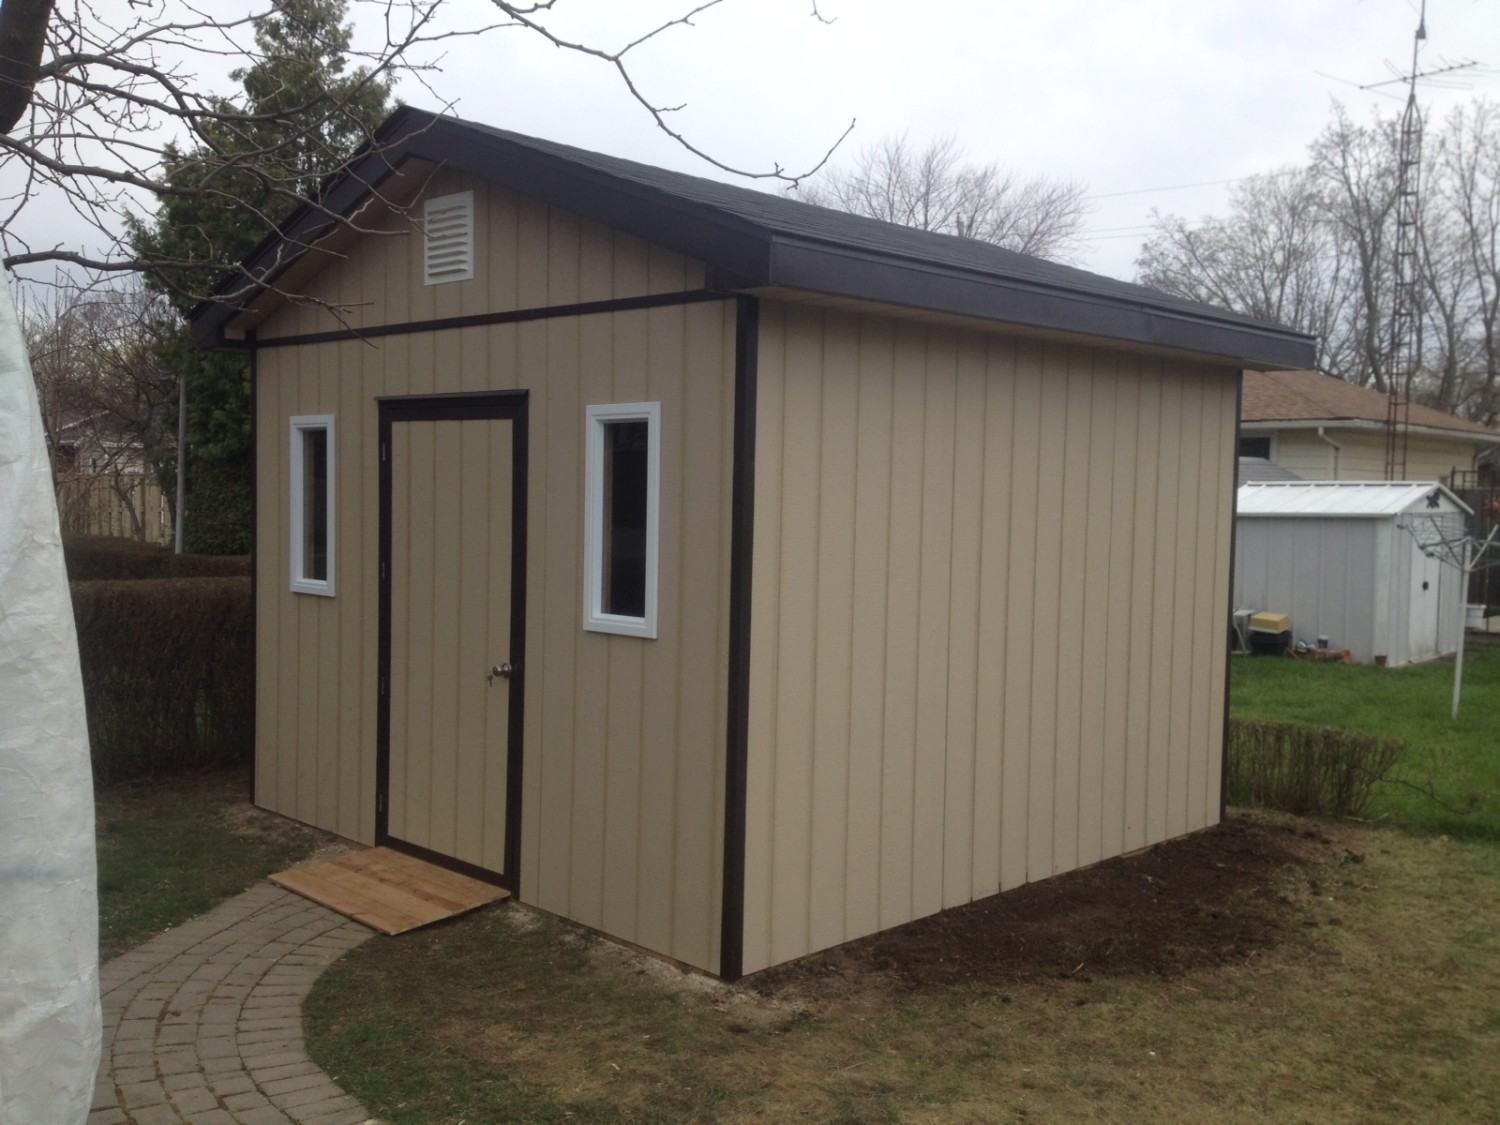 ... 12x12 Garden Shed. Hardy Panel Exterior With Shingled Roof.